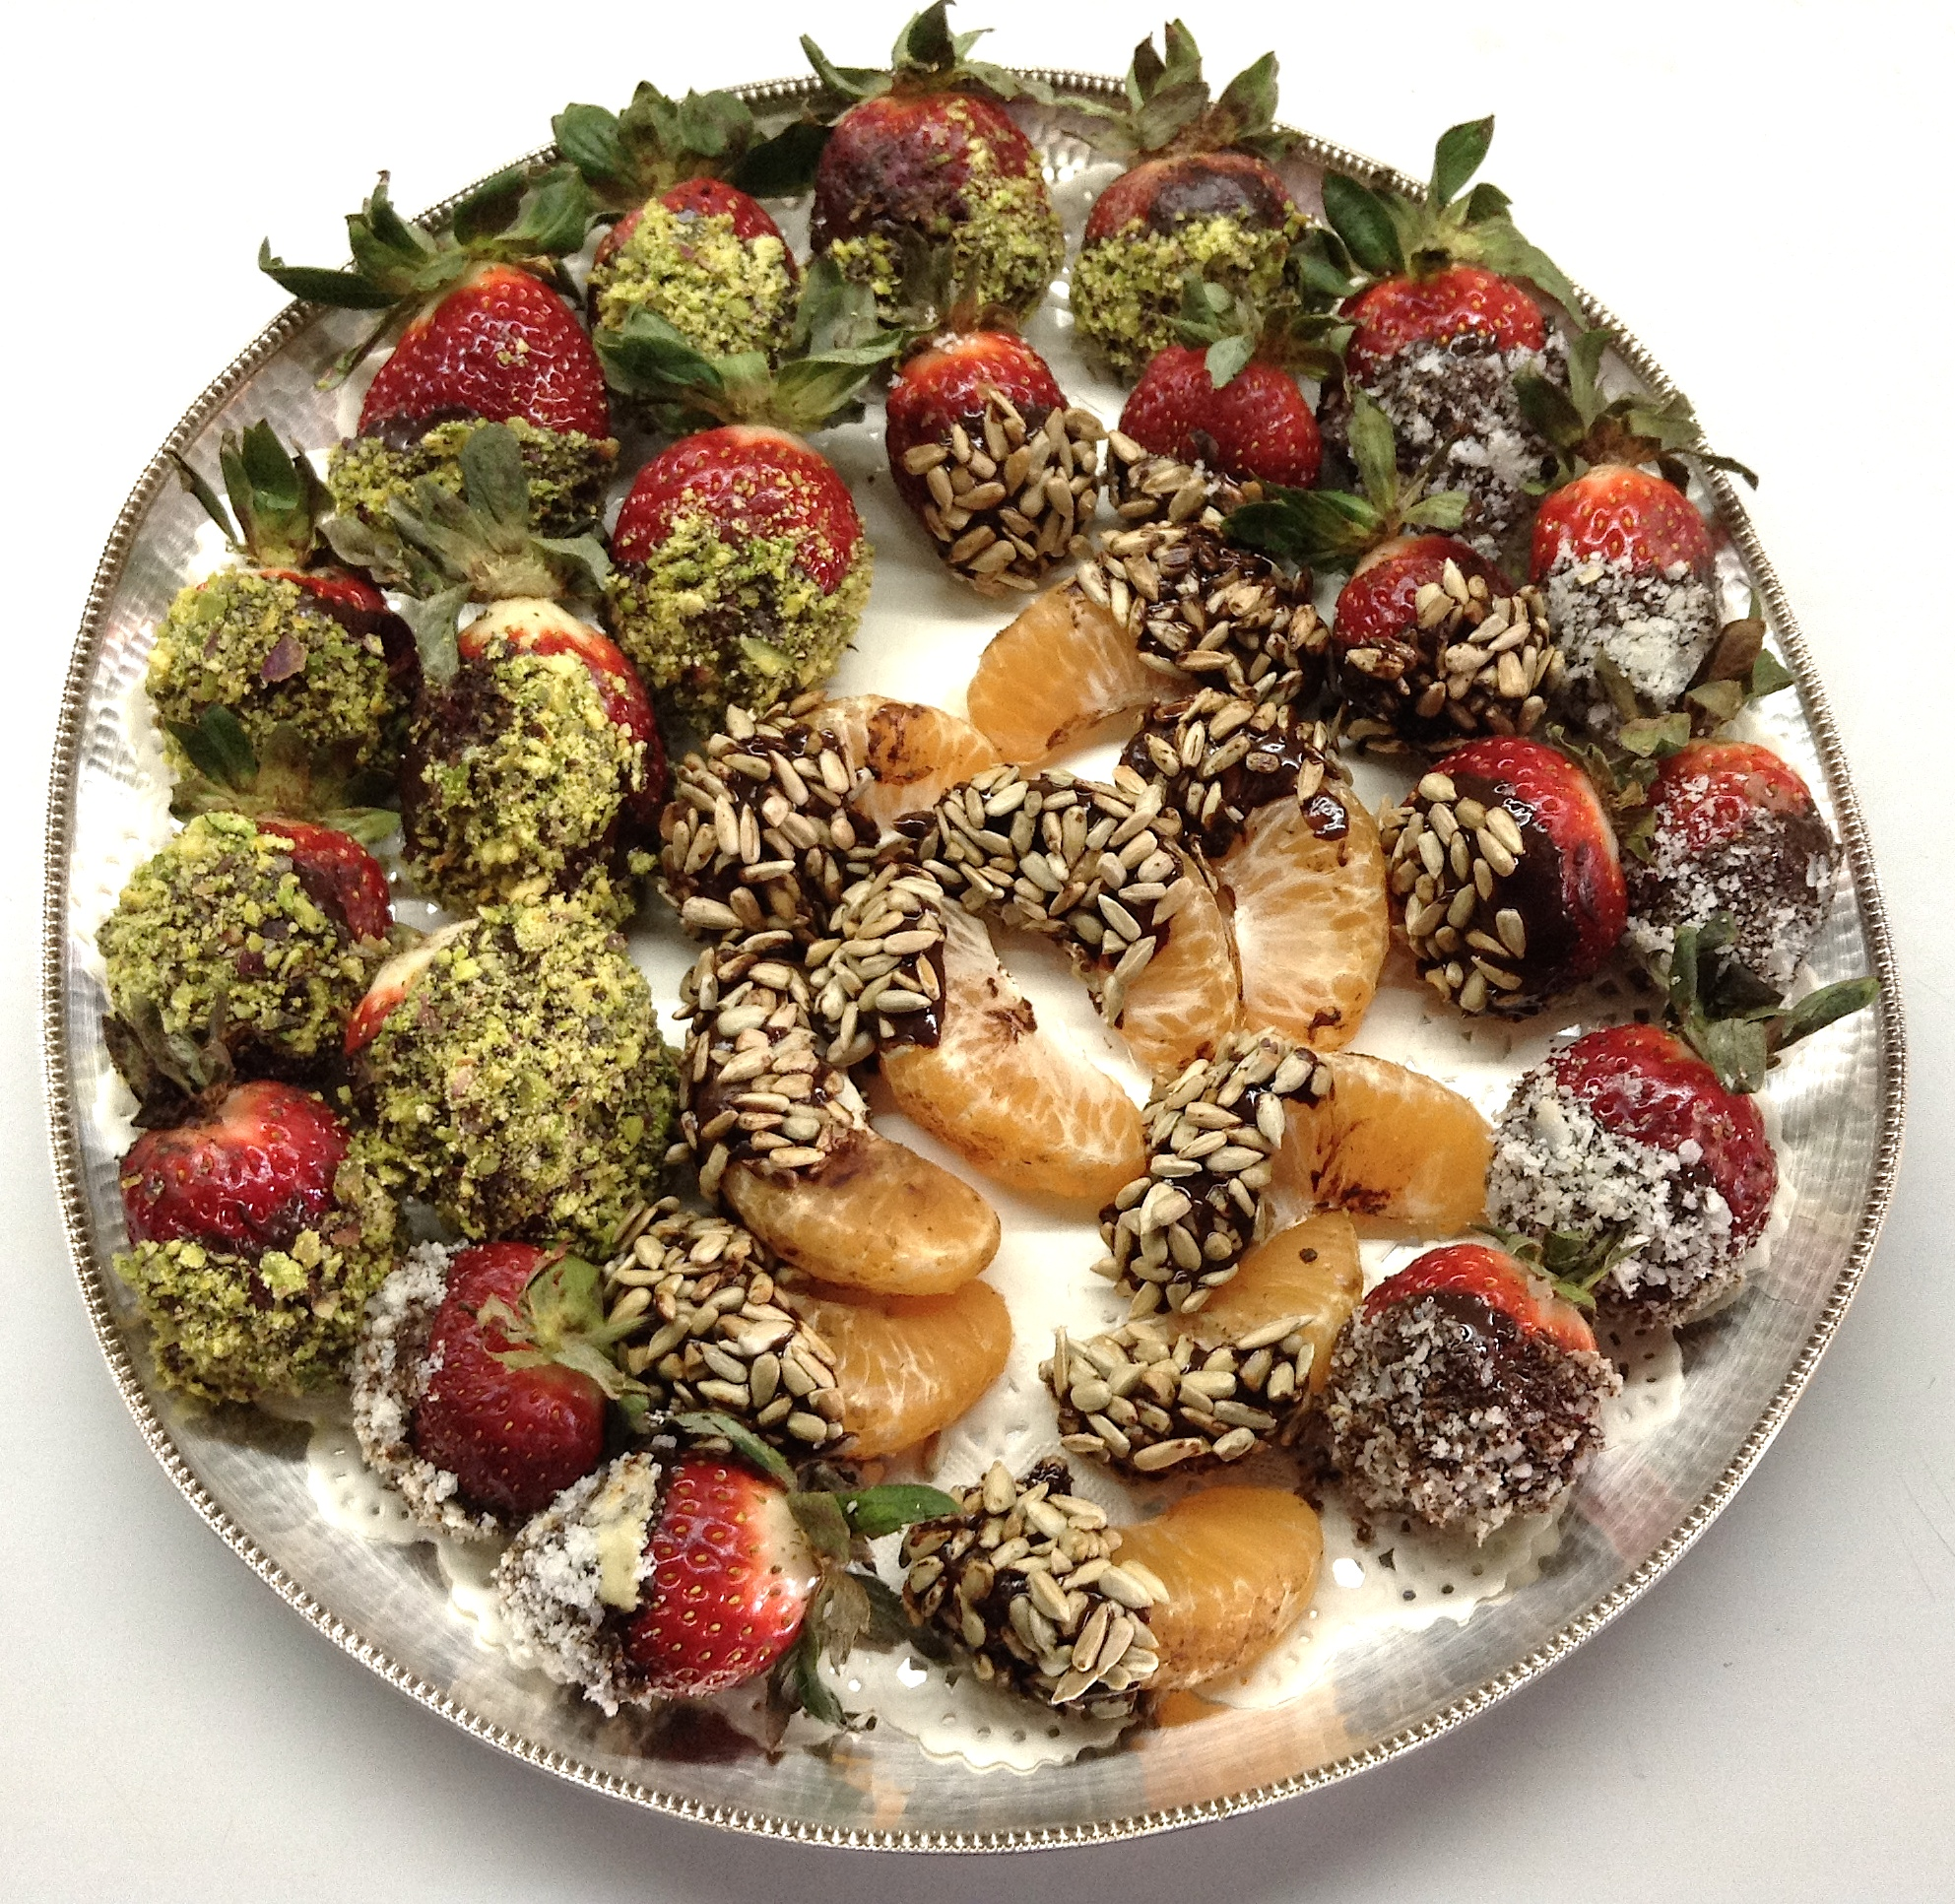 how to keep chocolate covered strawberries from leaking